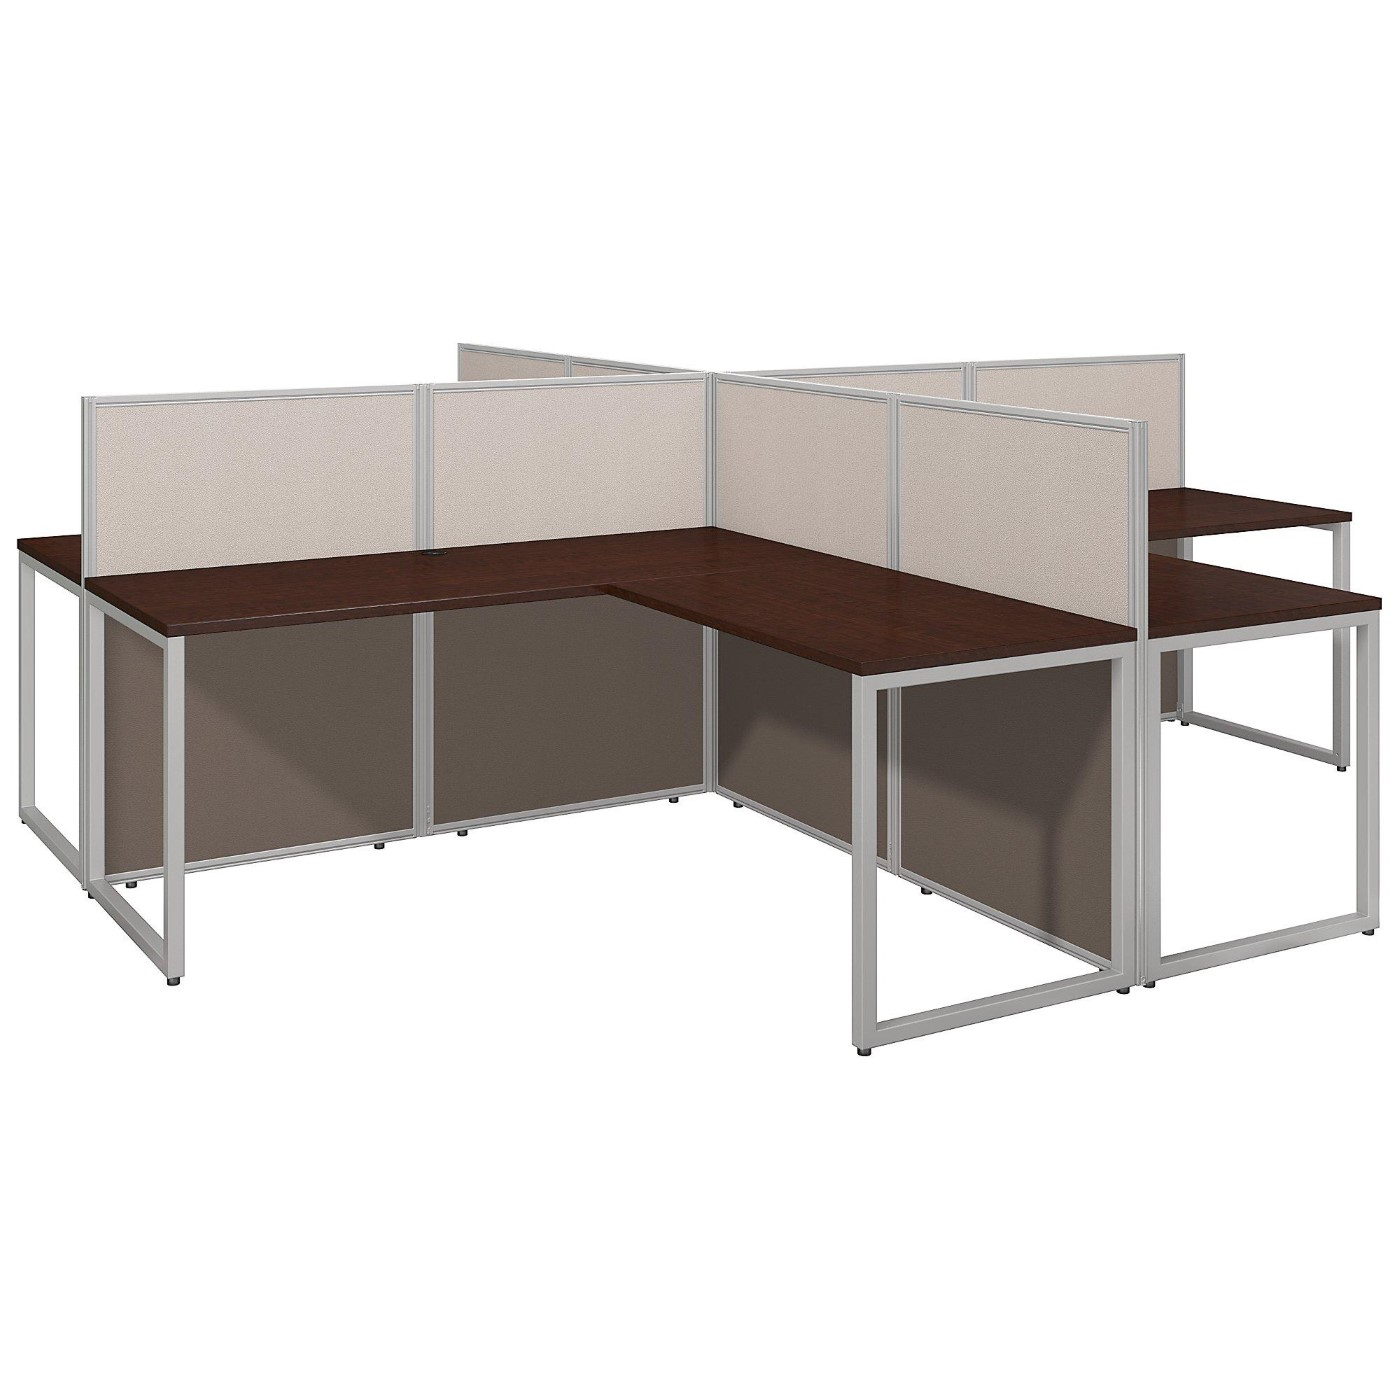 BUSH BUSINESS FURNITURE EASY OFFICE 60W 4 PERSON L SHAPED DESK OPEN OFFICE. FREE SHIPPING.  SALE DEDUCT 10% MORE ENTER '10percent' IN COUPON CODE BOX WHILE CHECKING OUT. ENDS 5-31-20.